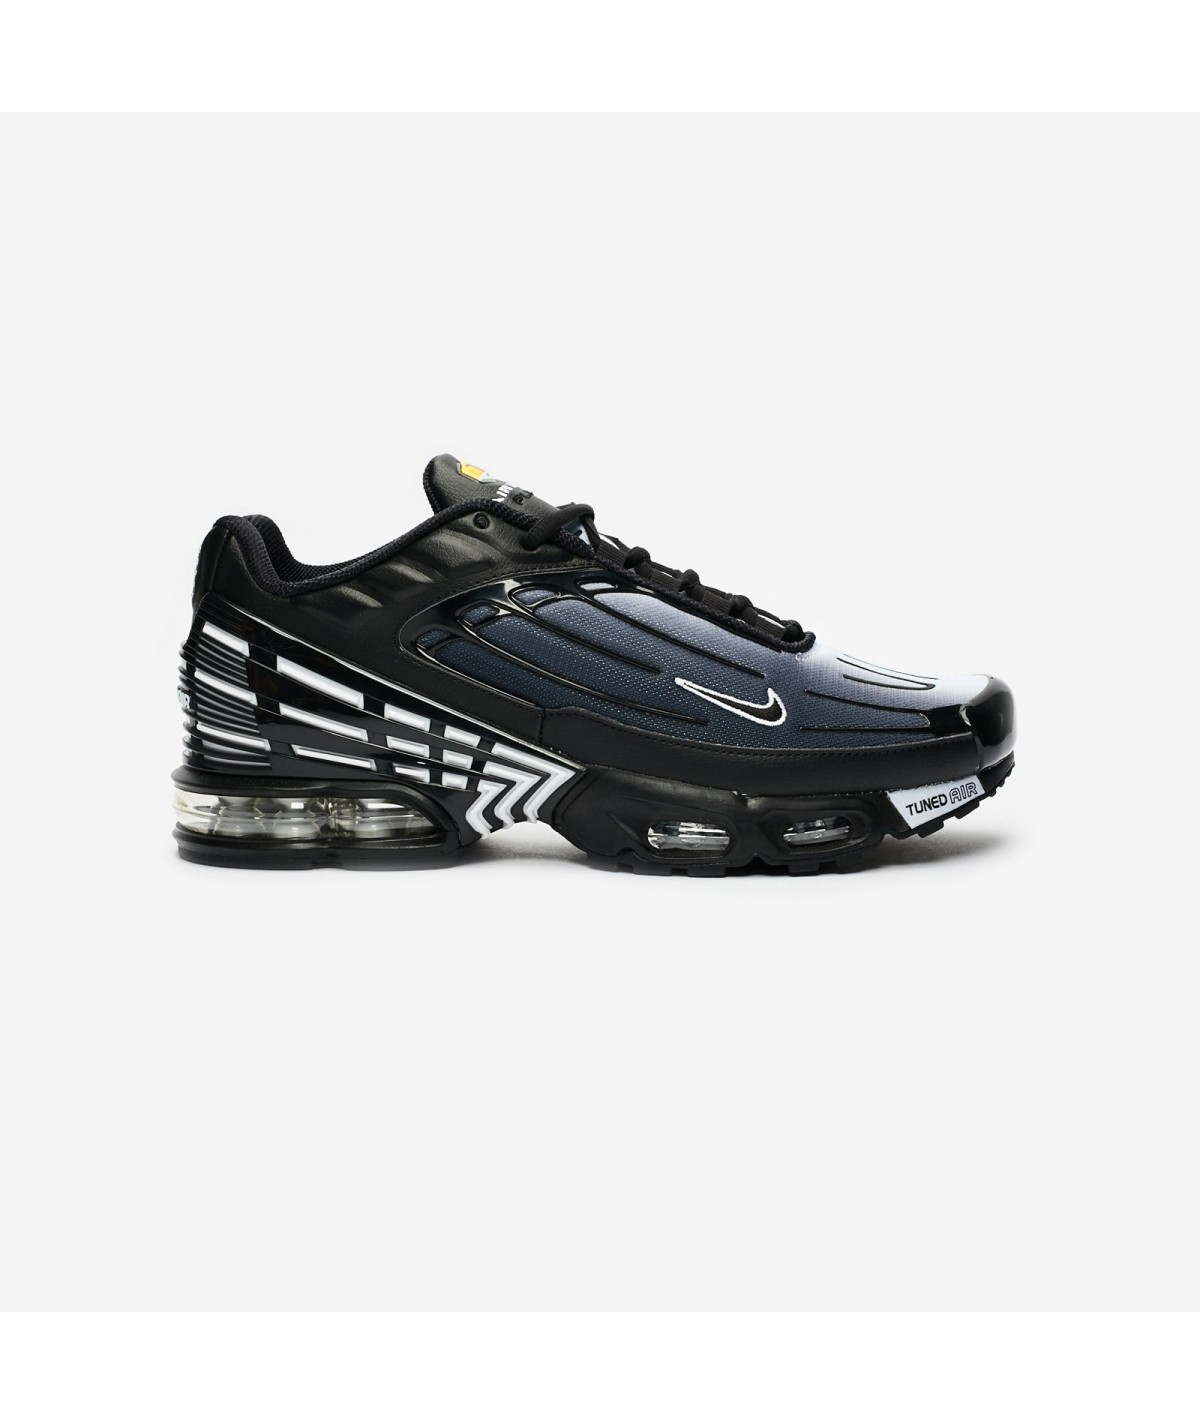 Nike Air Max Tuned 3 I Achat Sneakers Authentique I Cd7005-003 I Polestore.fr